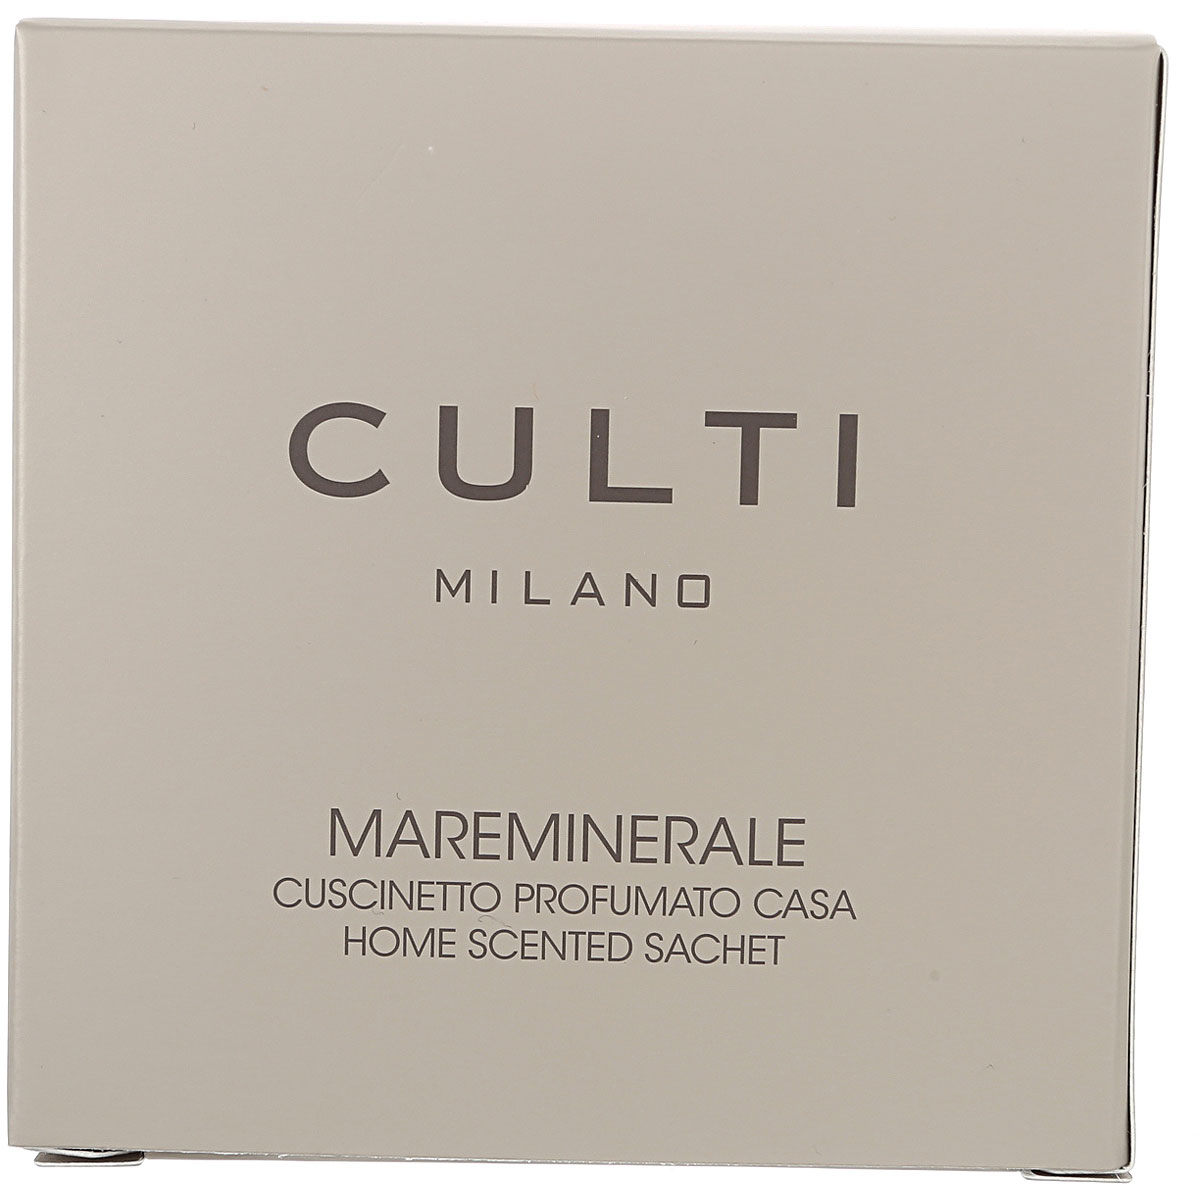 Culti Milano Home Scents for Men On Sale, Mareminerale - Home Scented Sachet, 2019